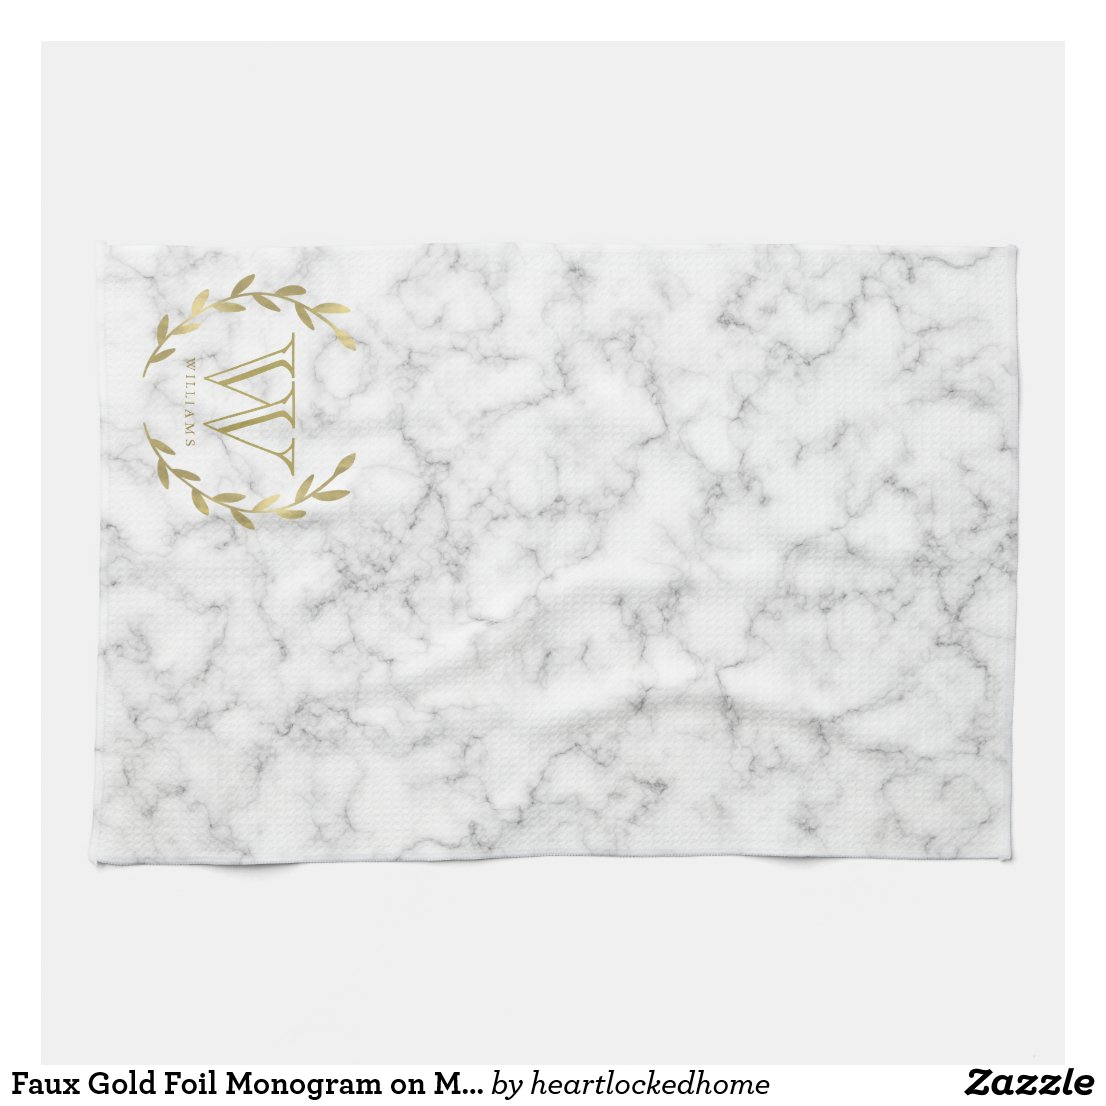 Faux Gold Foil Monogram on Marble Texture Tea Towel